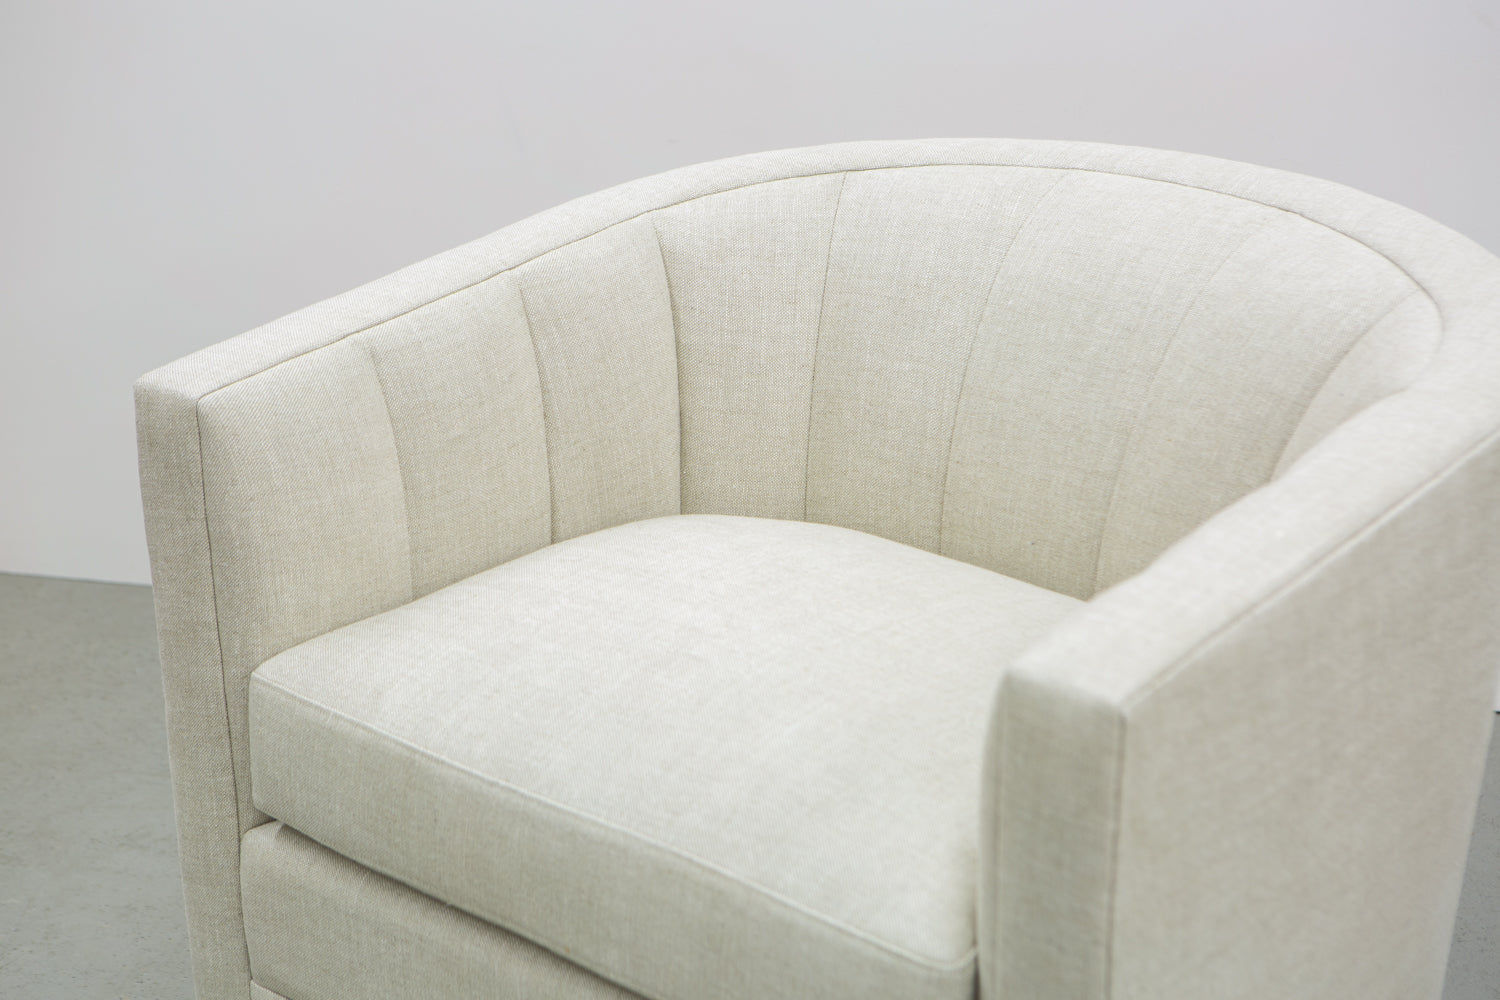 Side, top view of ffabb home Coco Chair inside channel back upholstered in Linen- Oatmeal